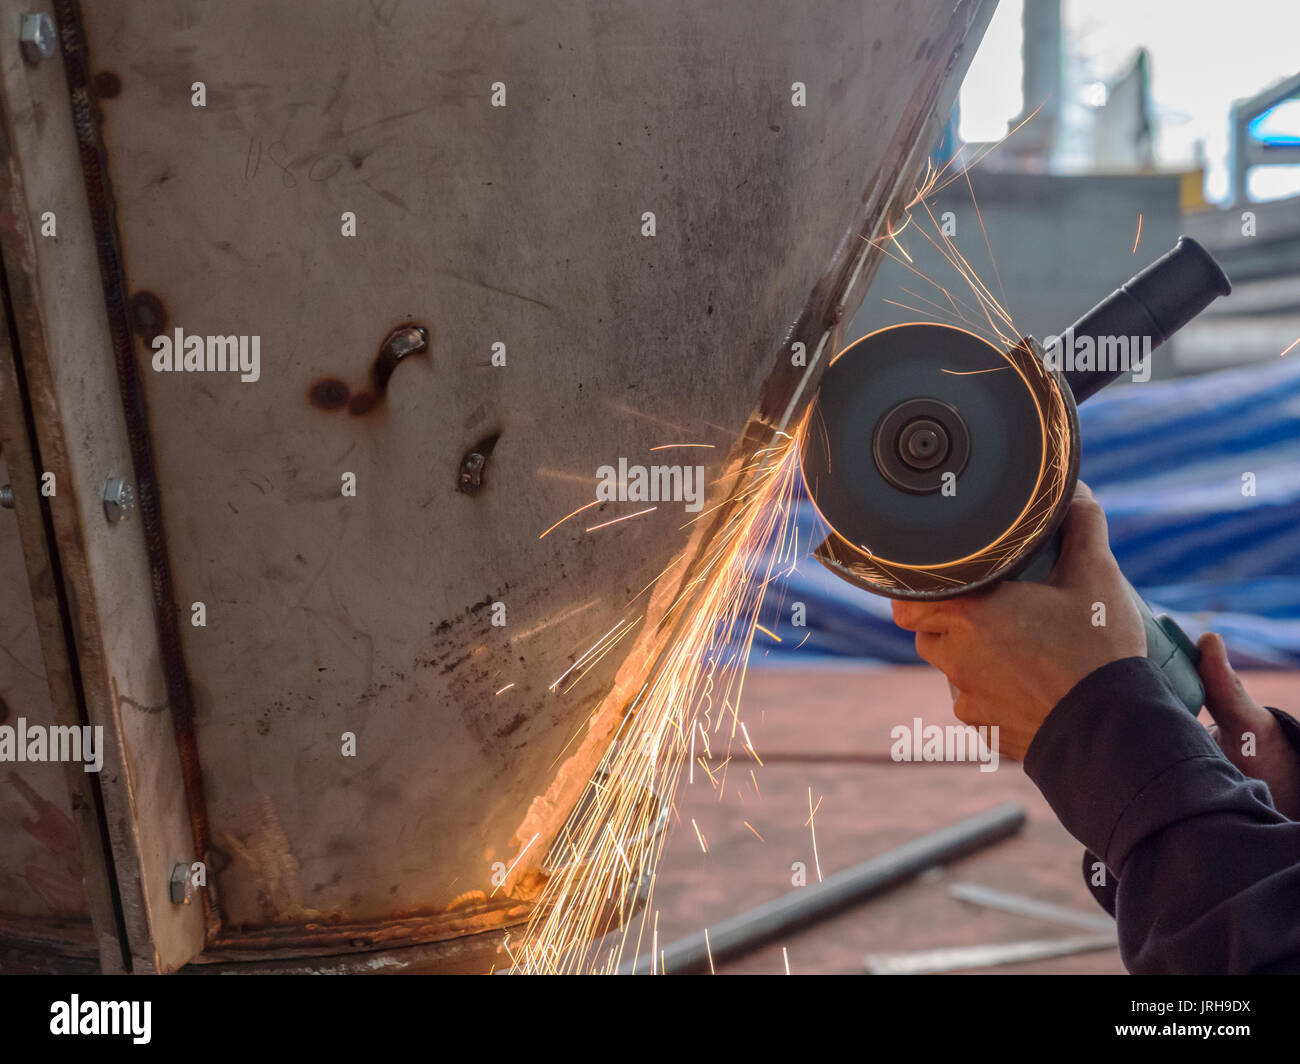 Angle grinder in use at a mechanical workshop. - Stock Image